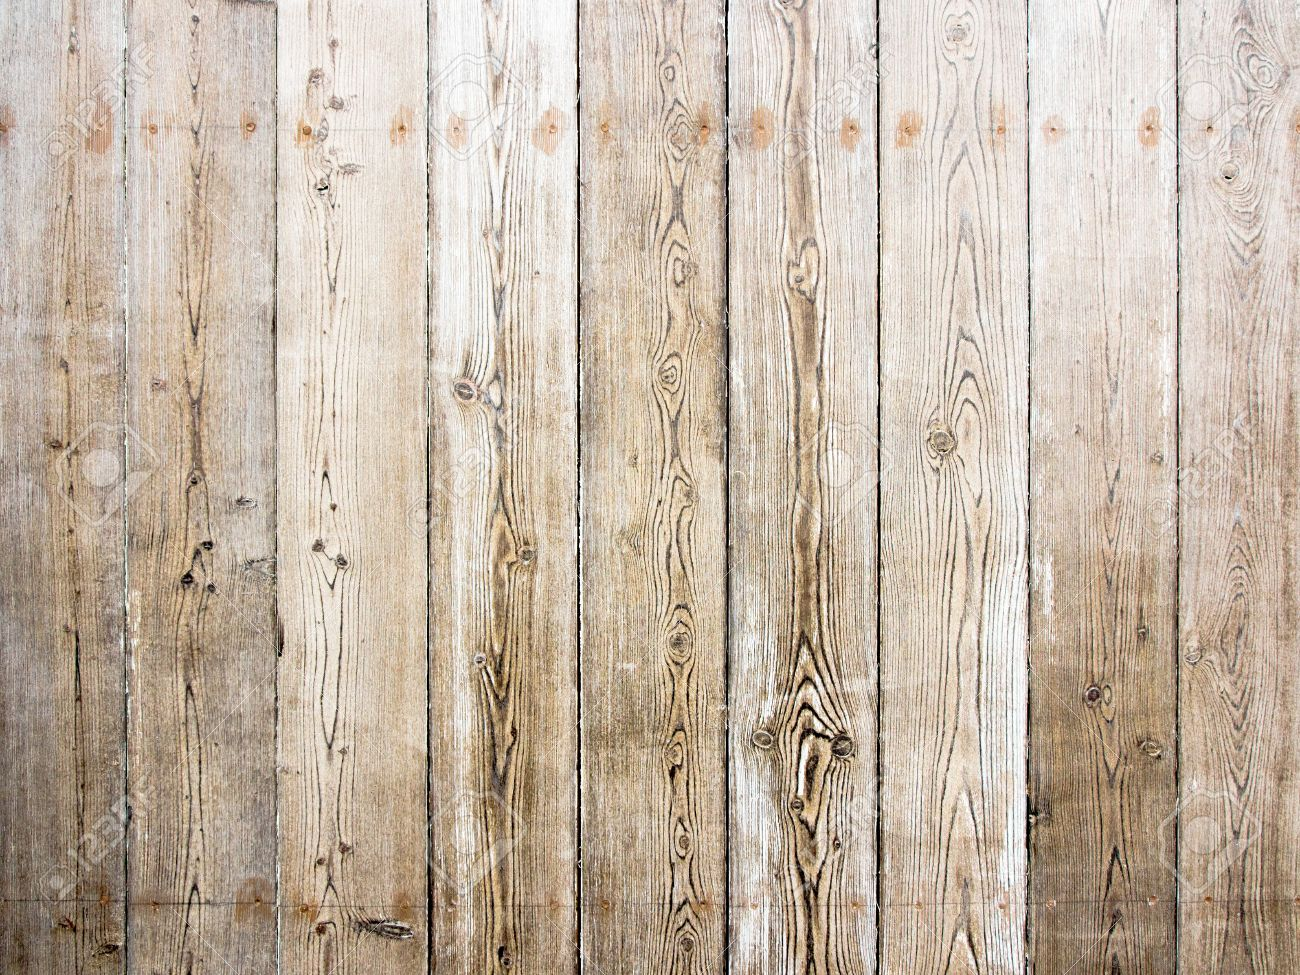 wood fence background. old vintage beautiful aged wooden fence background stock photo 30210575 wood t